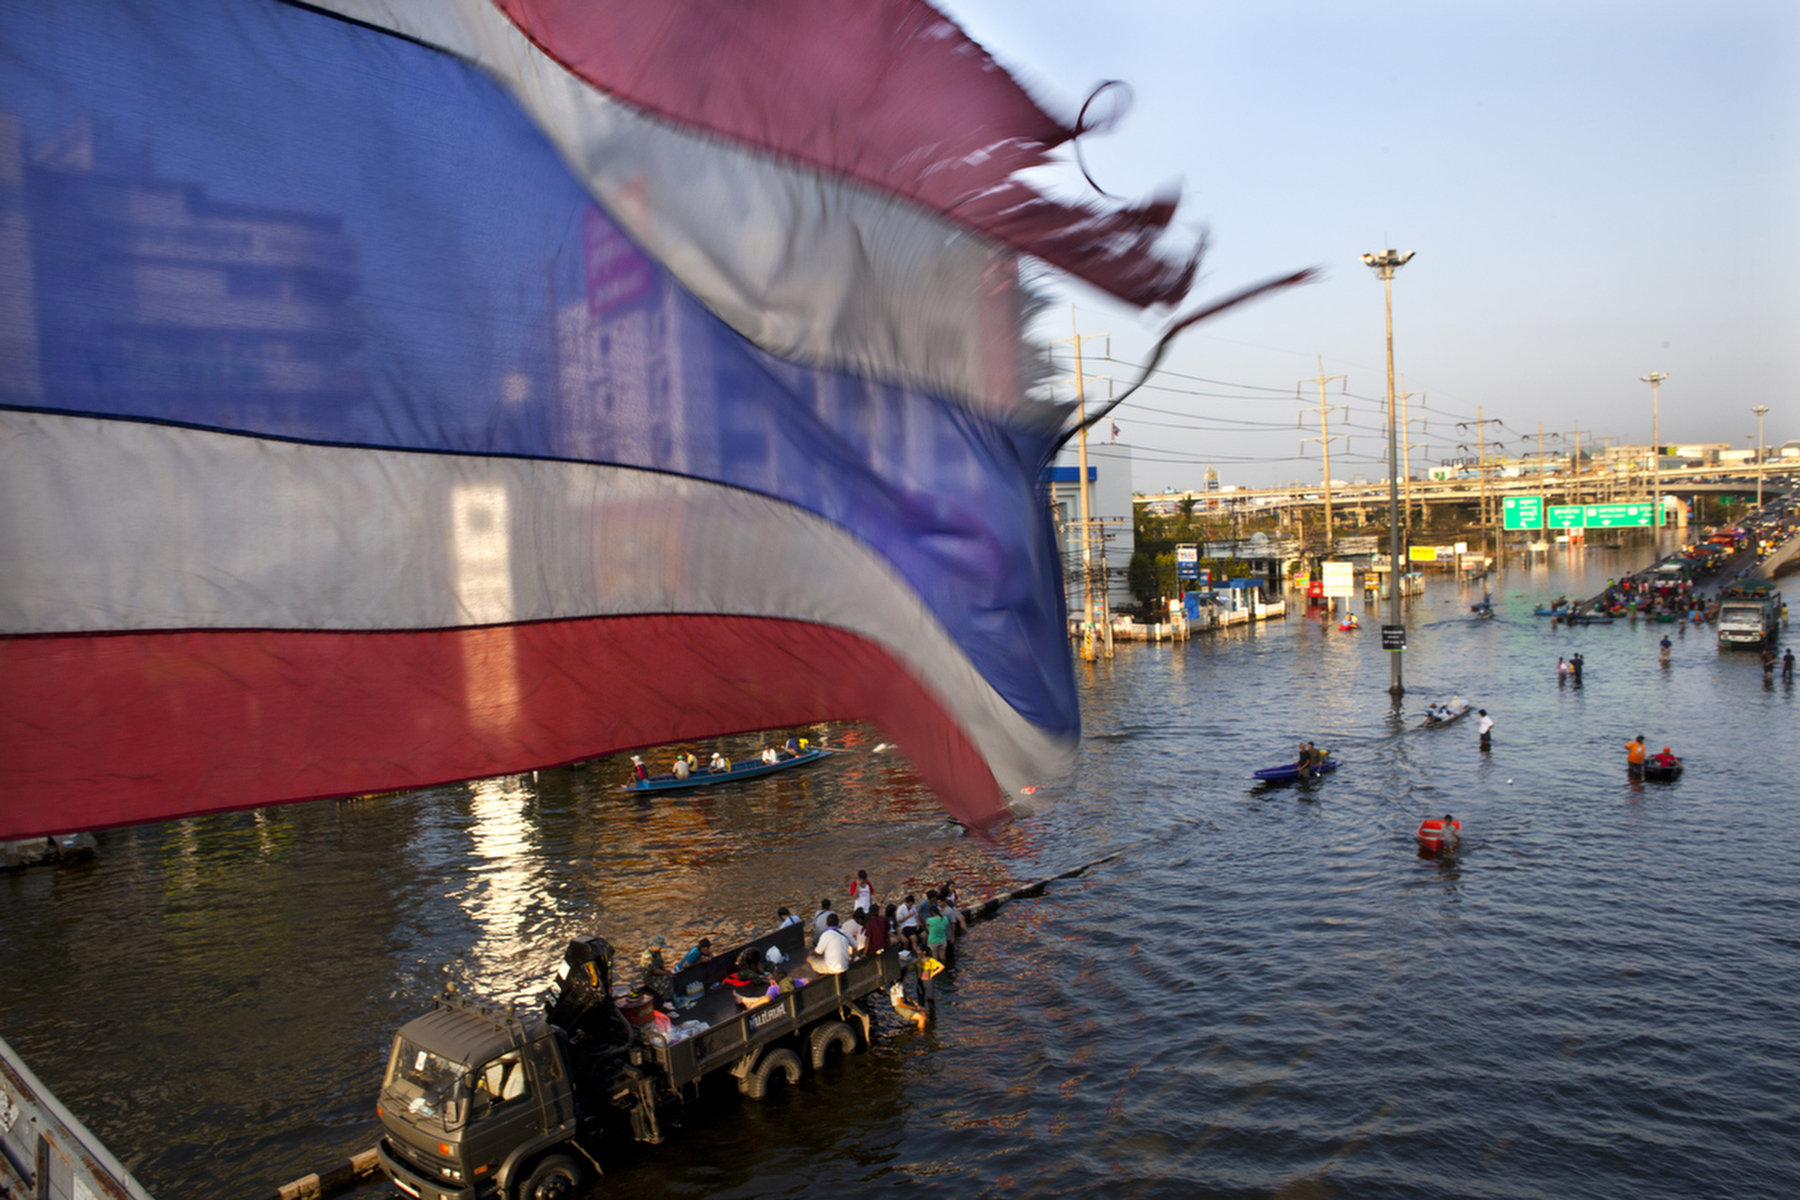 BANGKOK,THAILAND - NOVEMBER 16 :  An old tattered Thai flag blows over a bridge in the flooded district of Rangsit November 16, 2011 in Bangkok, Thailand. U.S Secretary of State Hillary Clinton Clinton came to Thailand today to offer support and significant US help in confronting Thailand\'s massive flooding. Over seven major industrial parks in Bangkok and, thousands of factories have been closed in the central Thai province of Ayutthaya and Nonthaburi with millions of tons of rice damaged. Across the country, the flooding which is now in its third month has affected 25 of Thailand\'s 64 provinces. Thailand is experiencing the worst flooding in over 50 years which has affected more than nine million people. The death toll stands at 562 people. (Photo by Paula Bronstein /Getty Images)